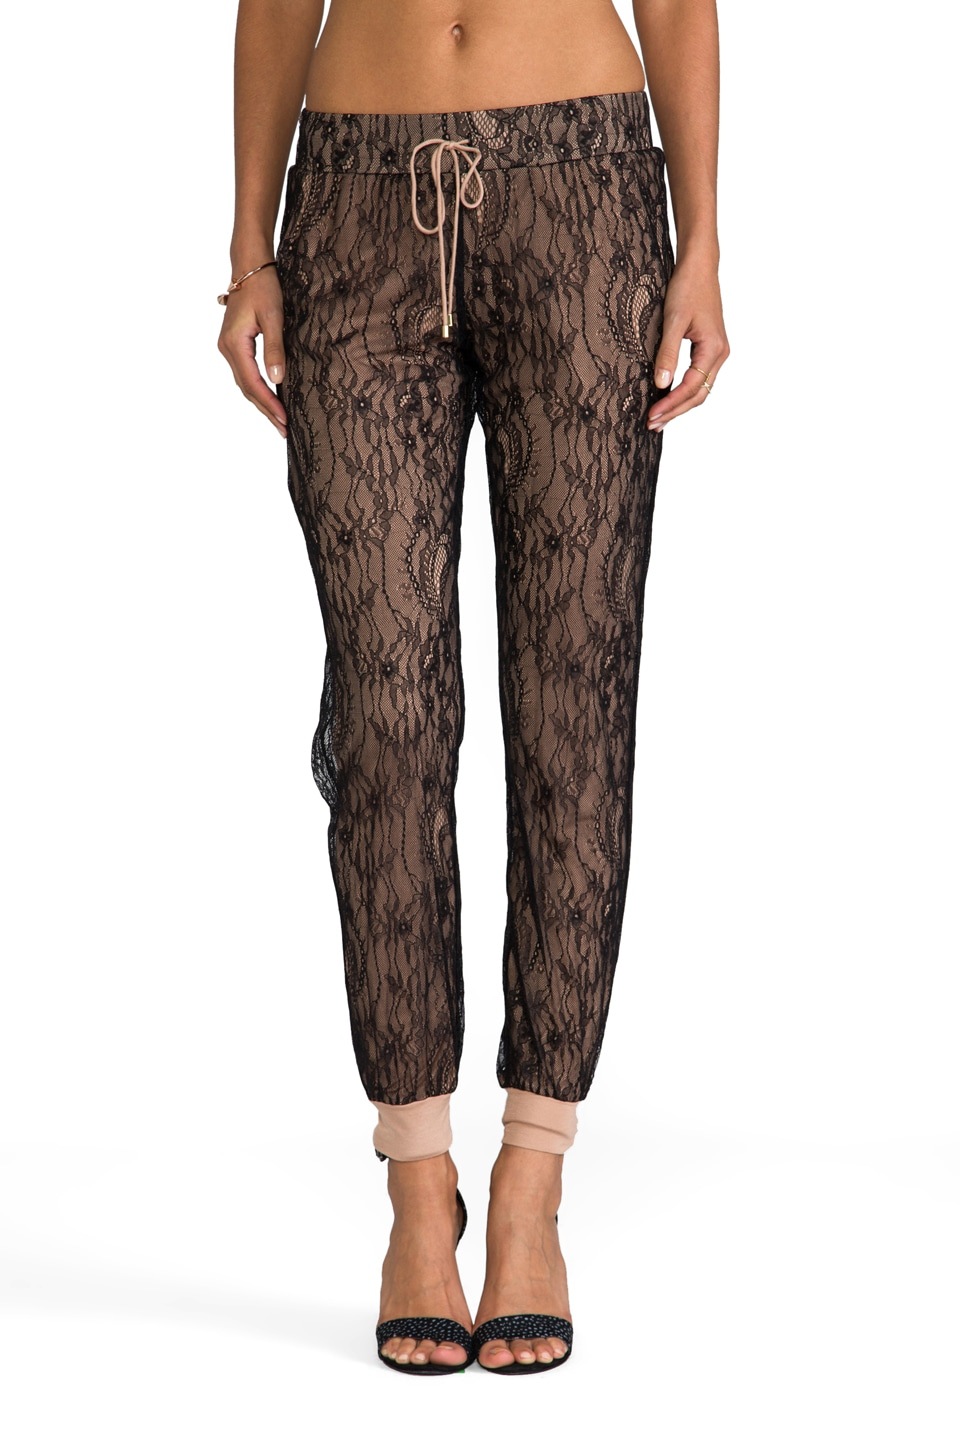 Haute Hippie Chiffon & Lace Sweatpant in Black/Suntan